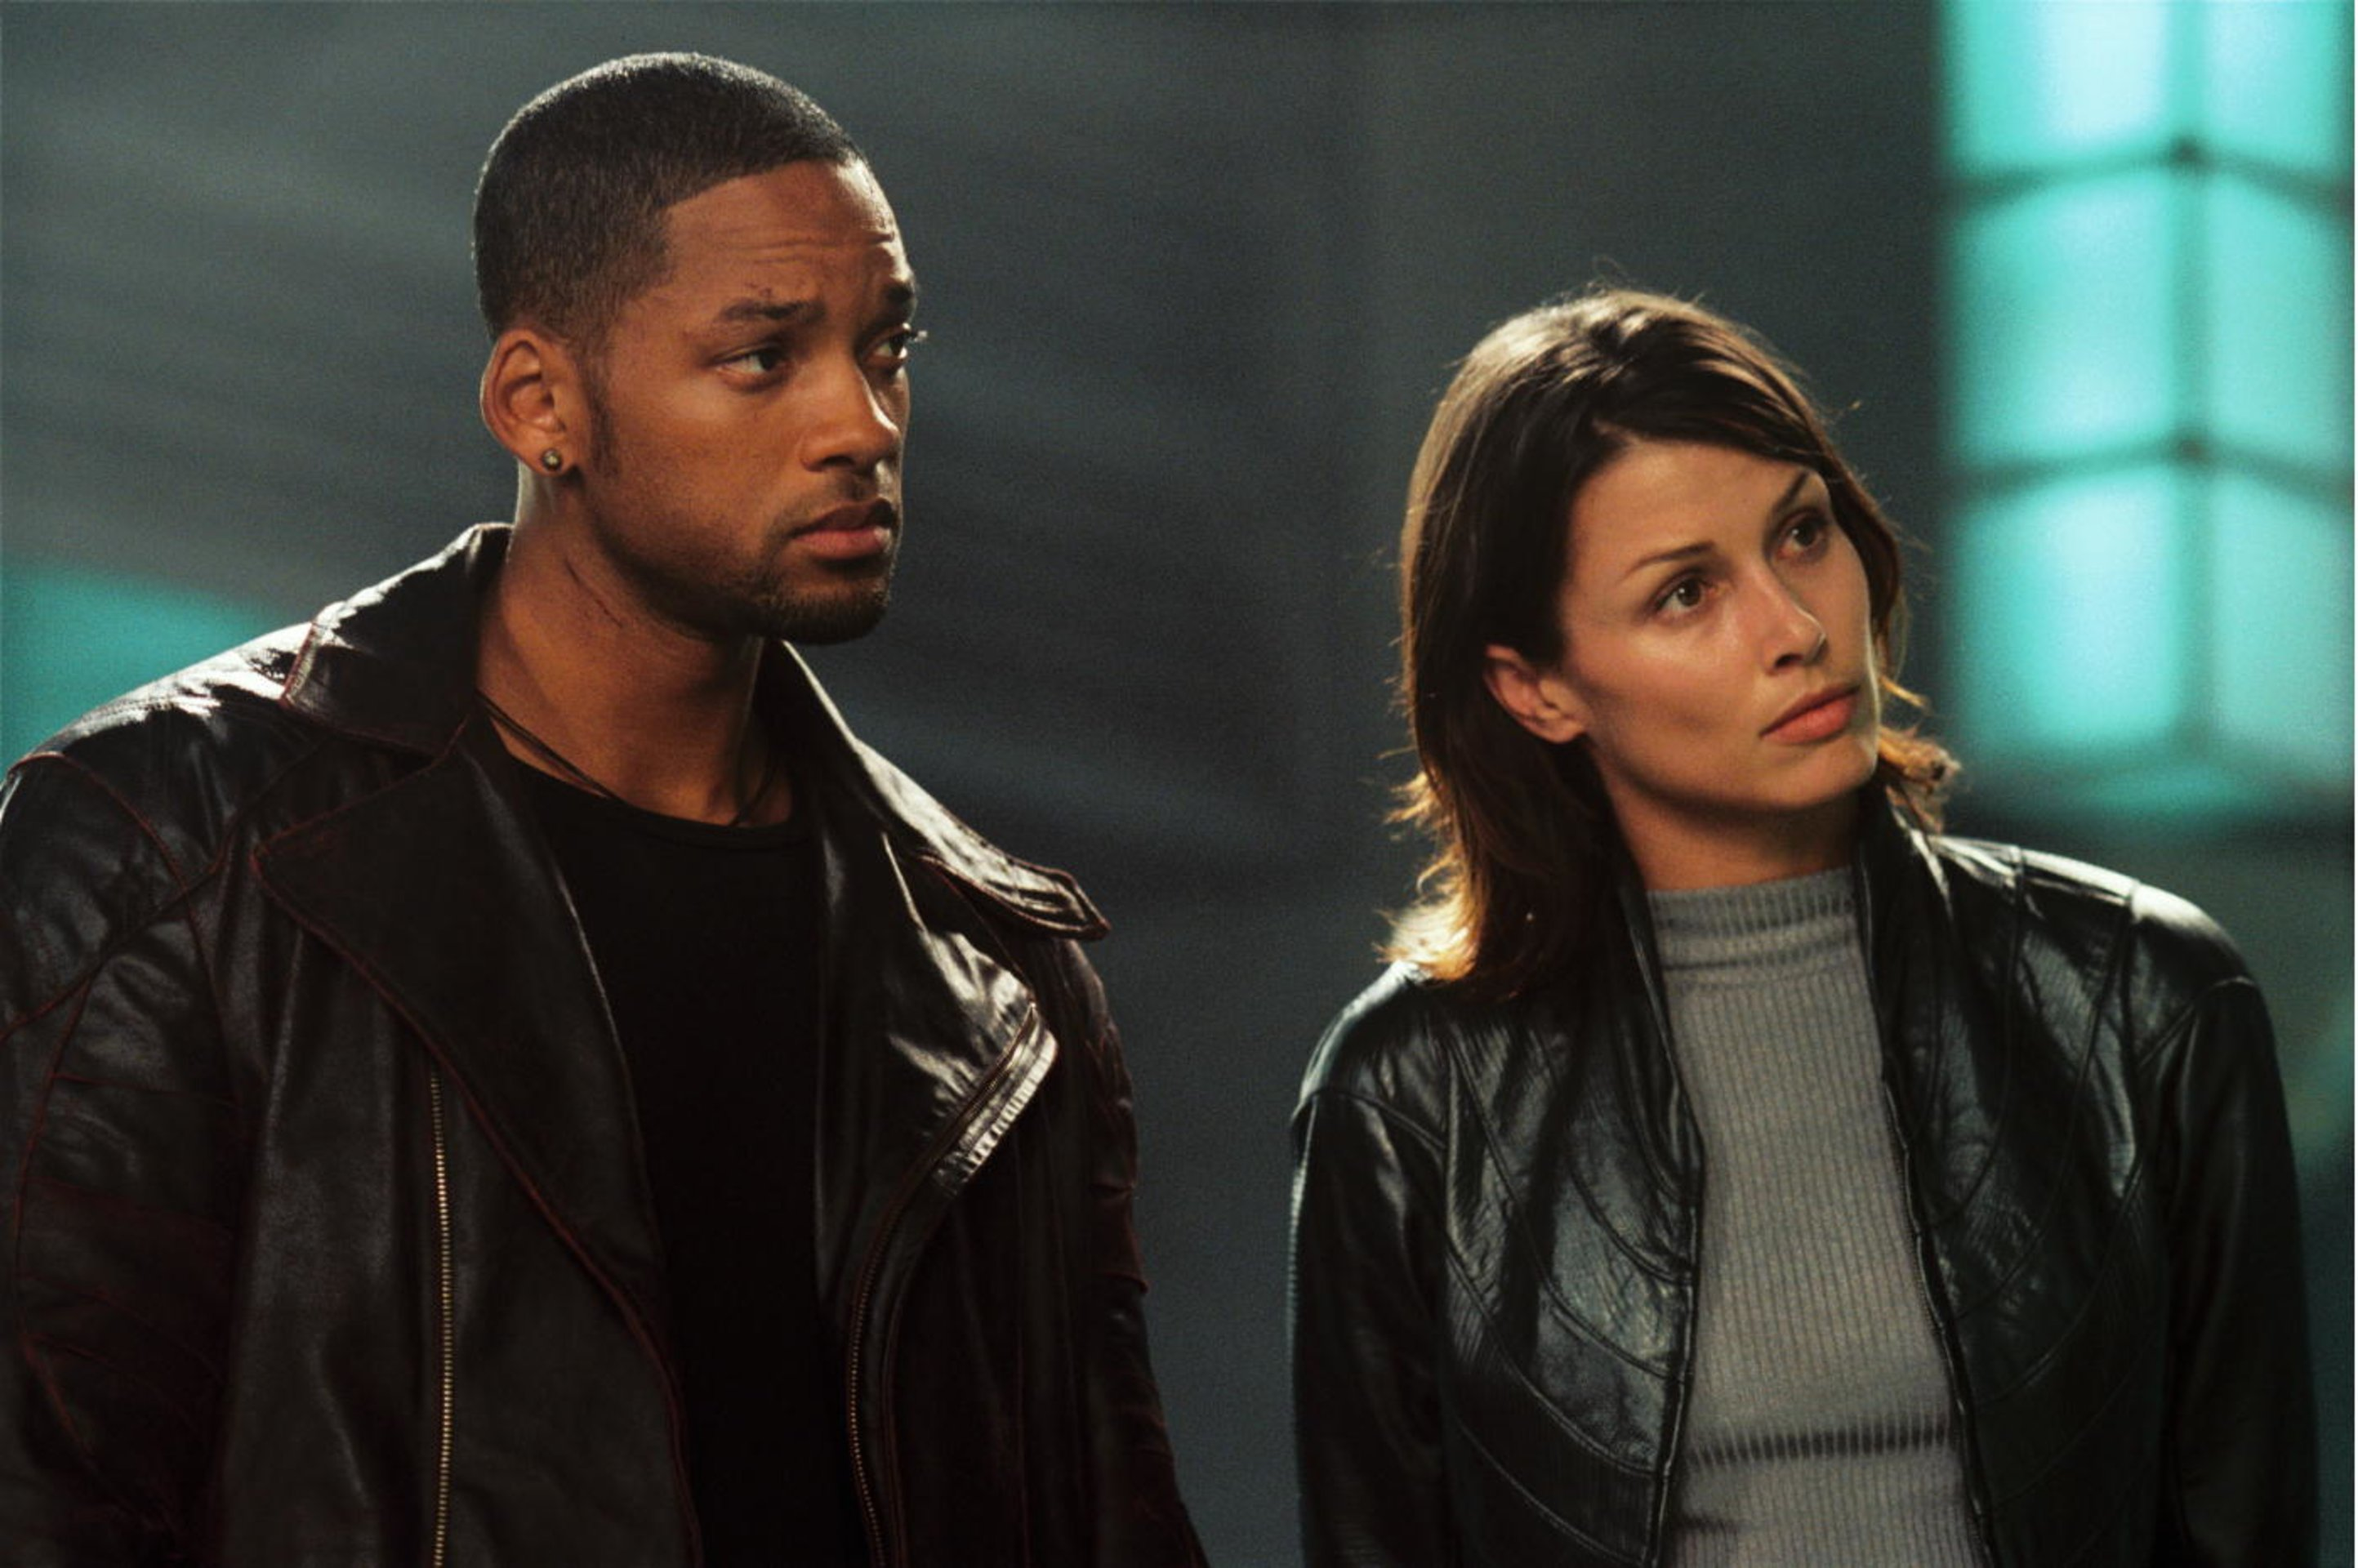 Will Smith as detective Dell Spooner and Bridget Moynahan as robot psychologist Dr Susan Calvin in I, Robot (2004)